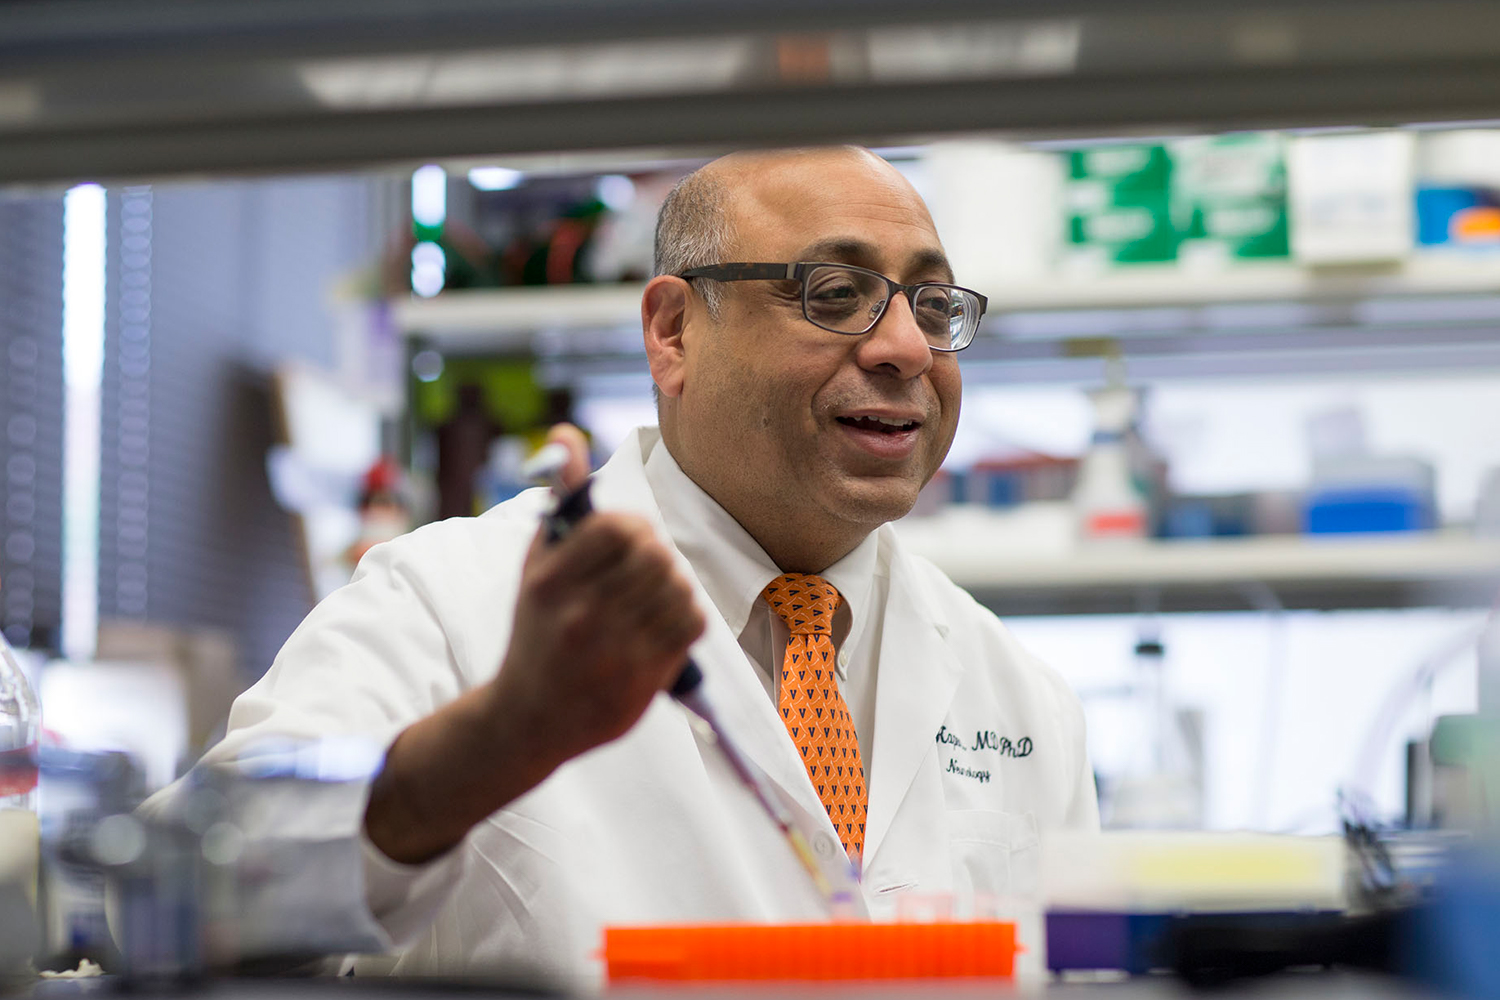 Dr. Jaideep Kapur, director of the UVA Brain Institute, is a chaired professor in the School of Medicine's departments of Neurology and Neuroscience.